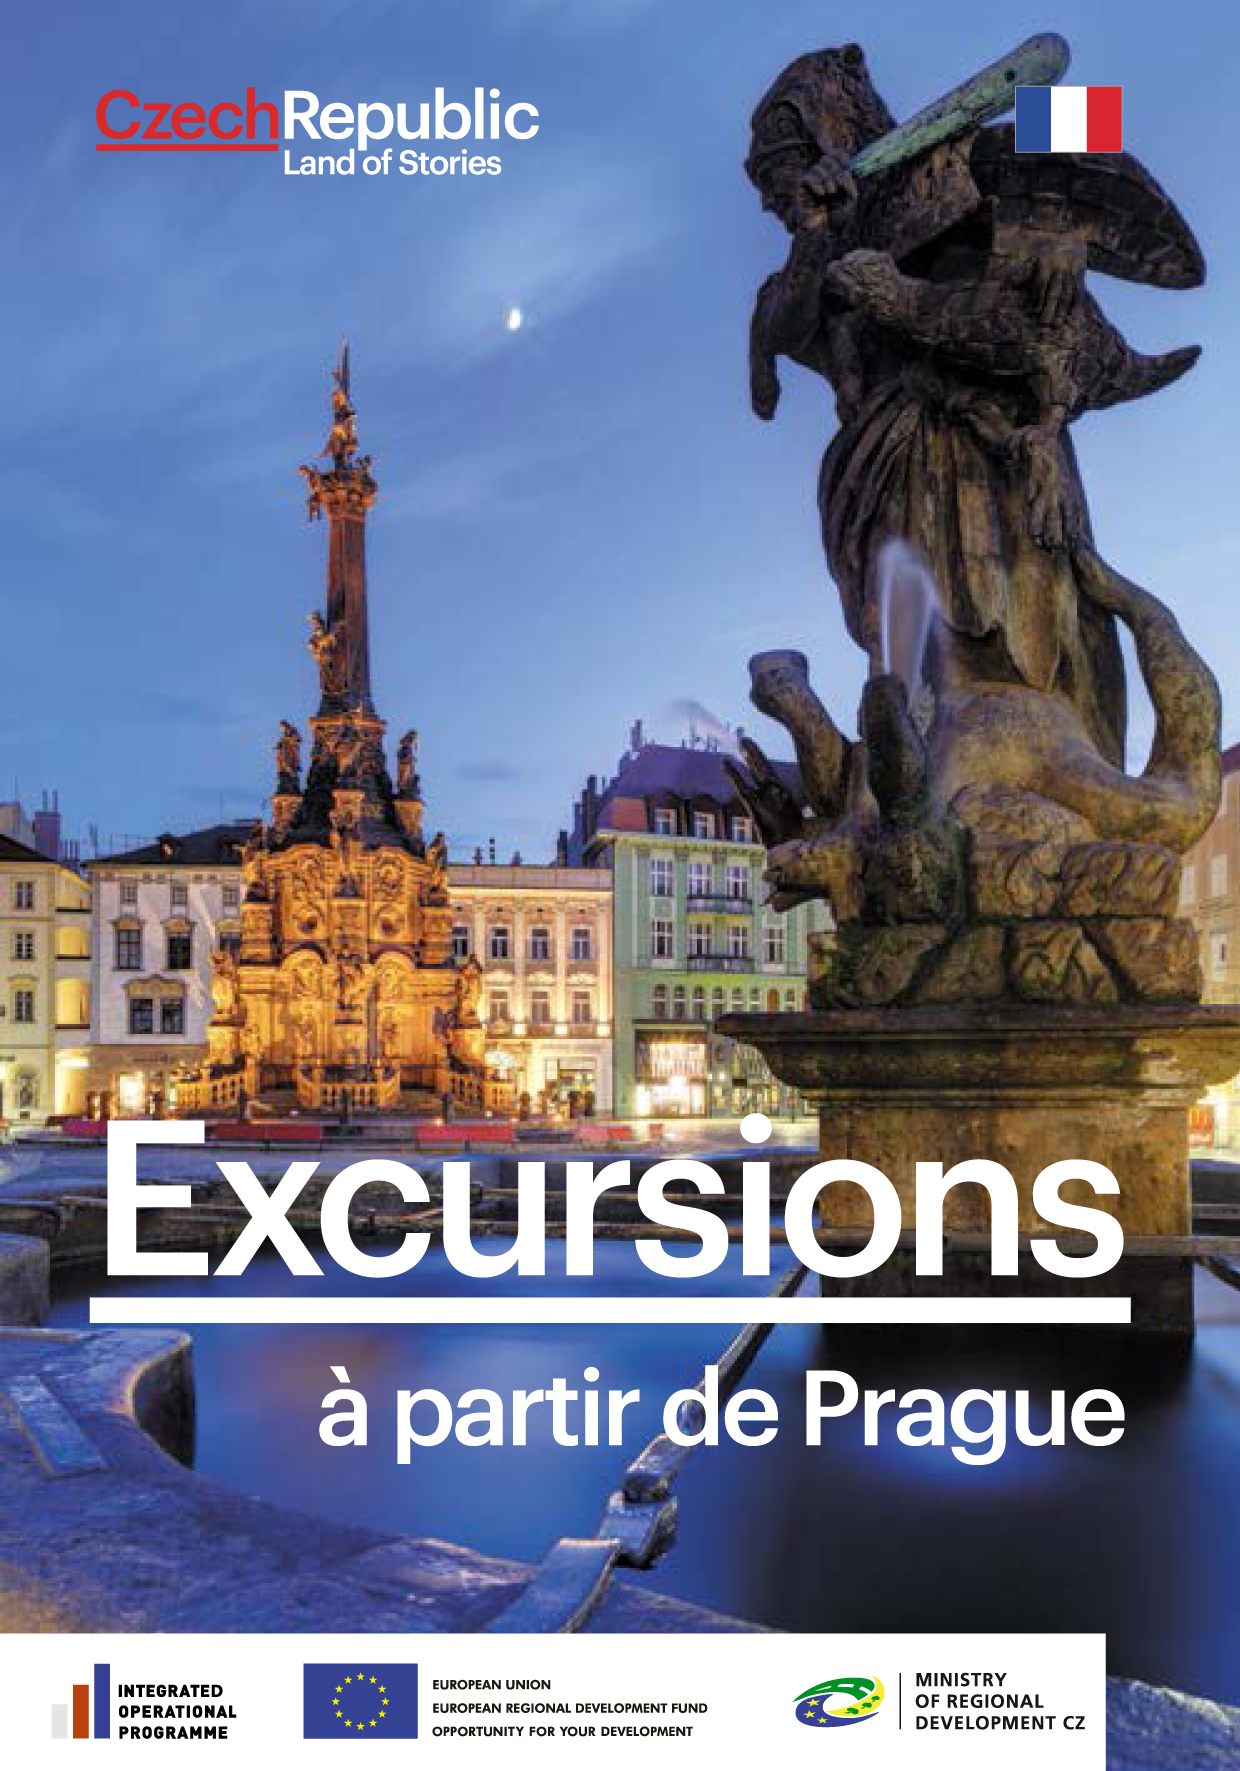 Excursions à partir de Prague